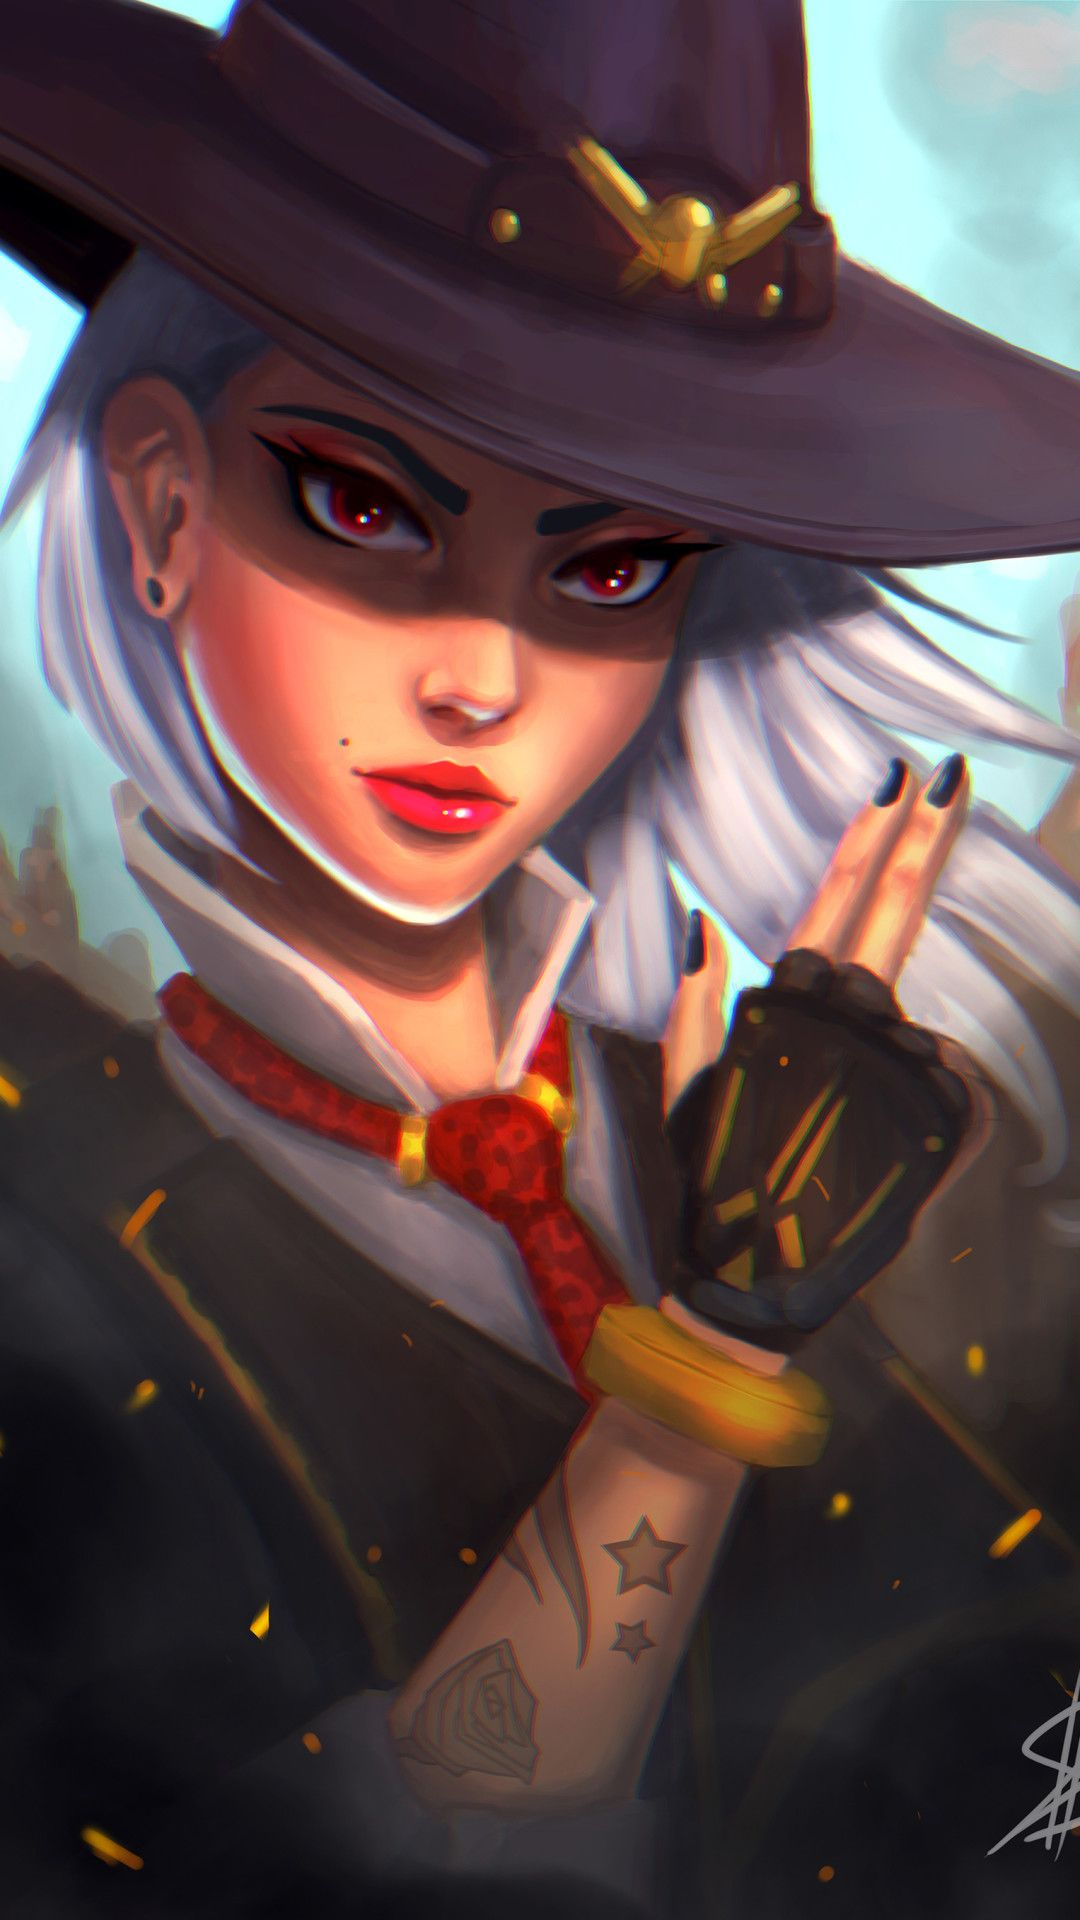 Ashe From Overwatch Mobile Wallpaper (iPhone, Android